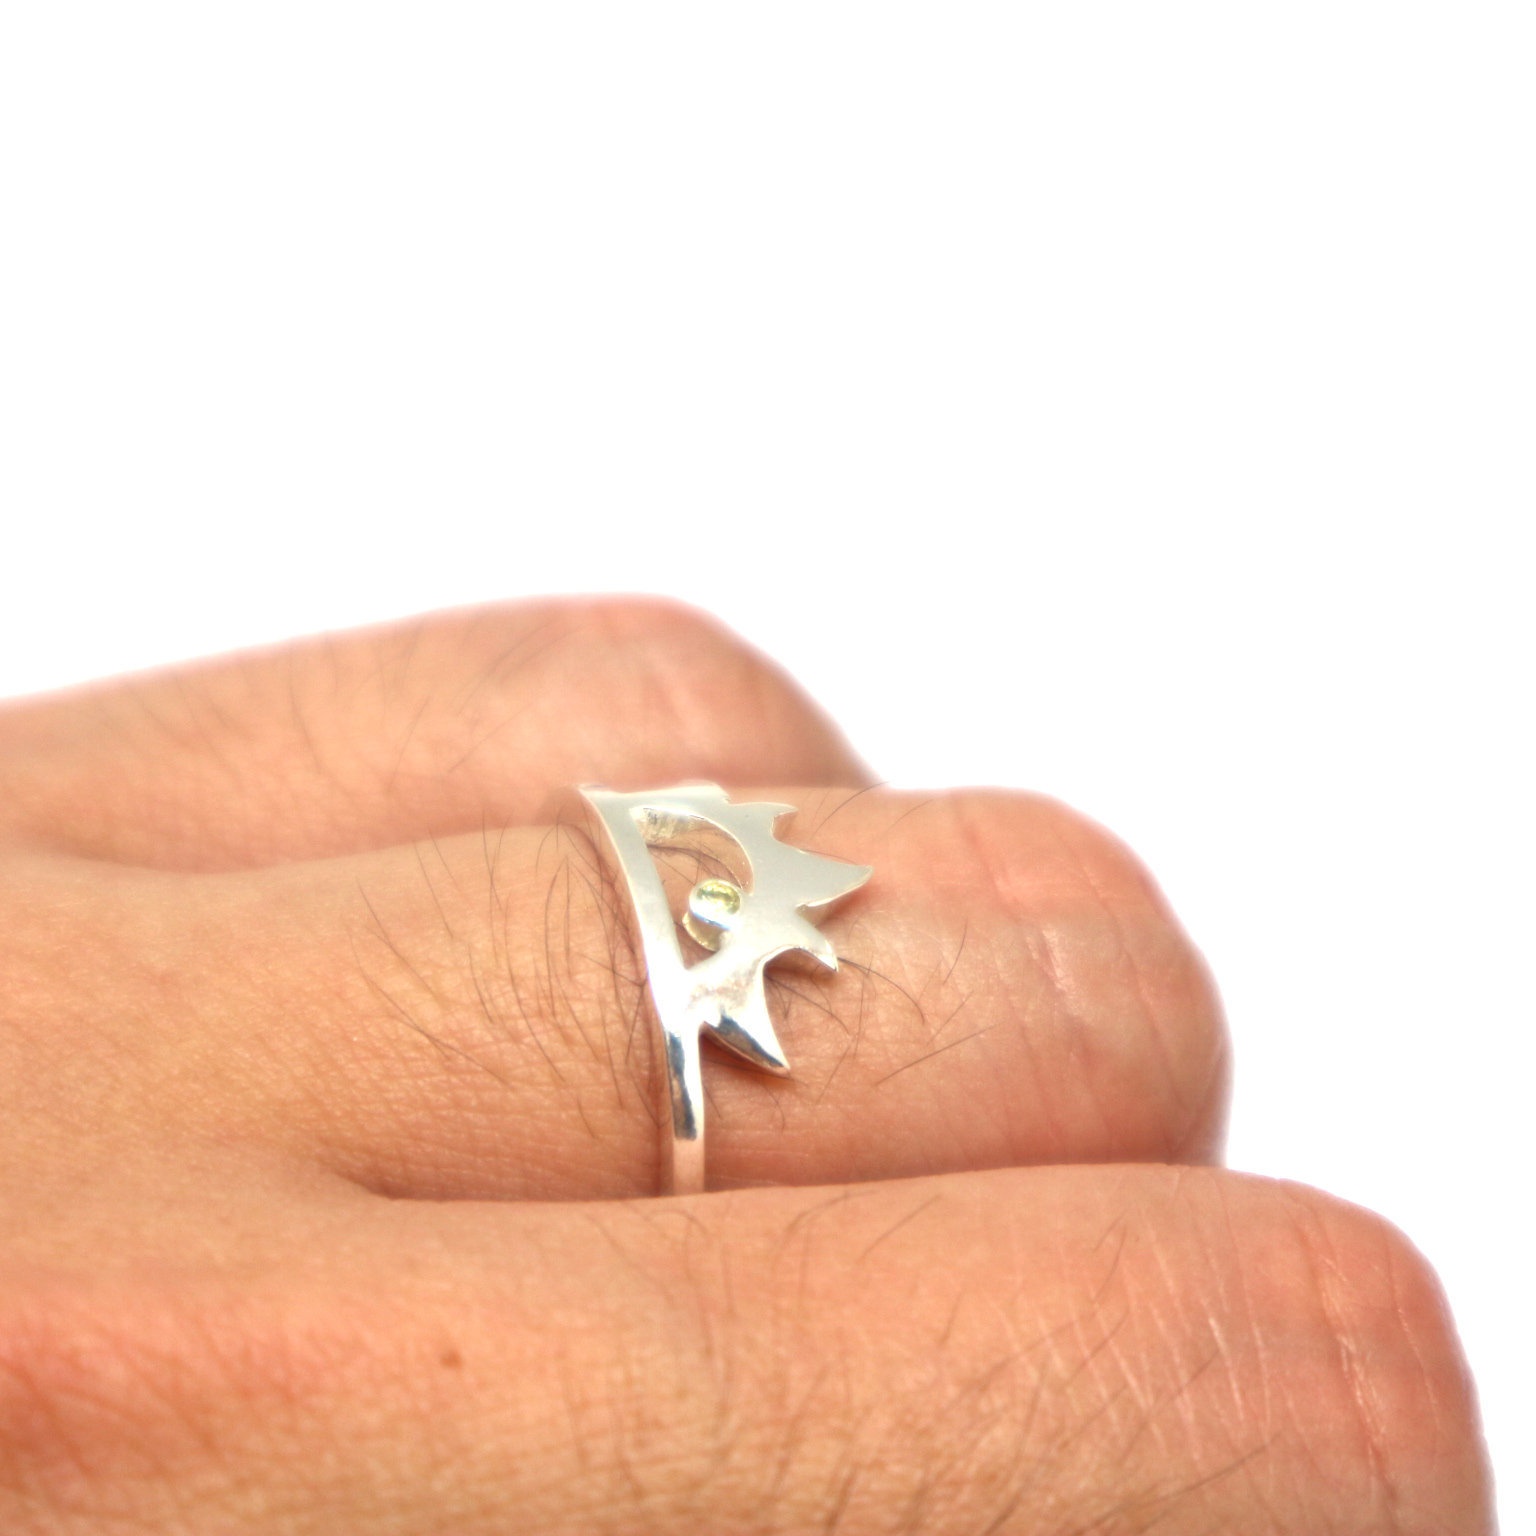 Silver Sun Ring with Birthstone image 6